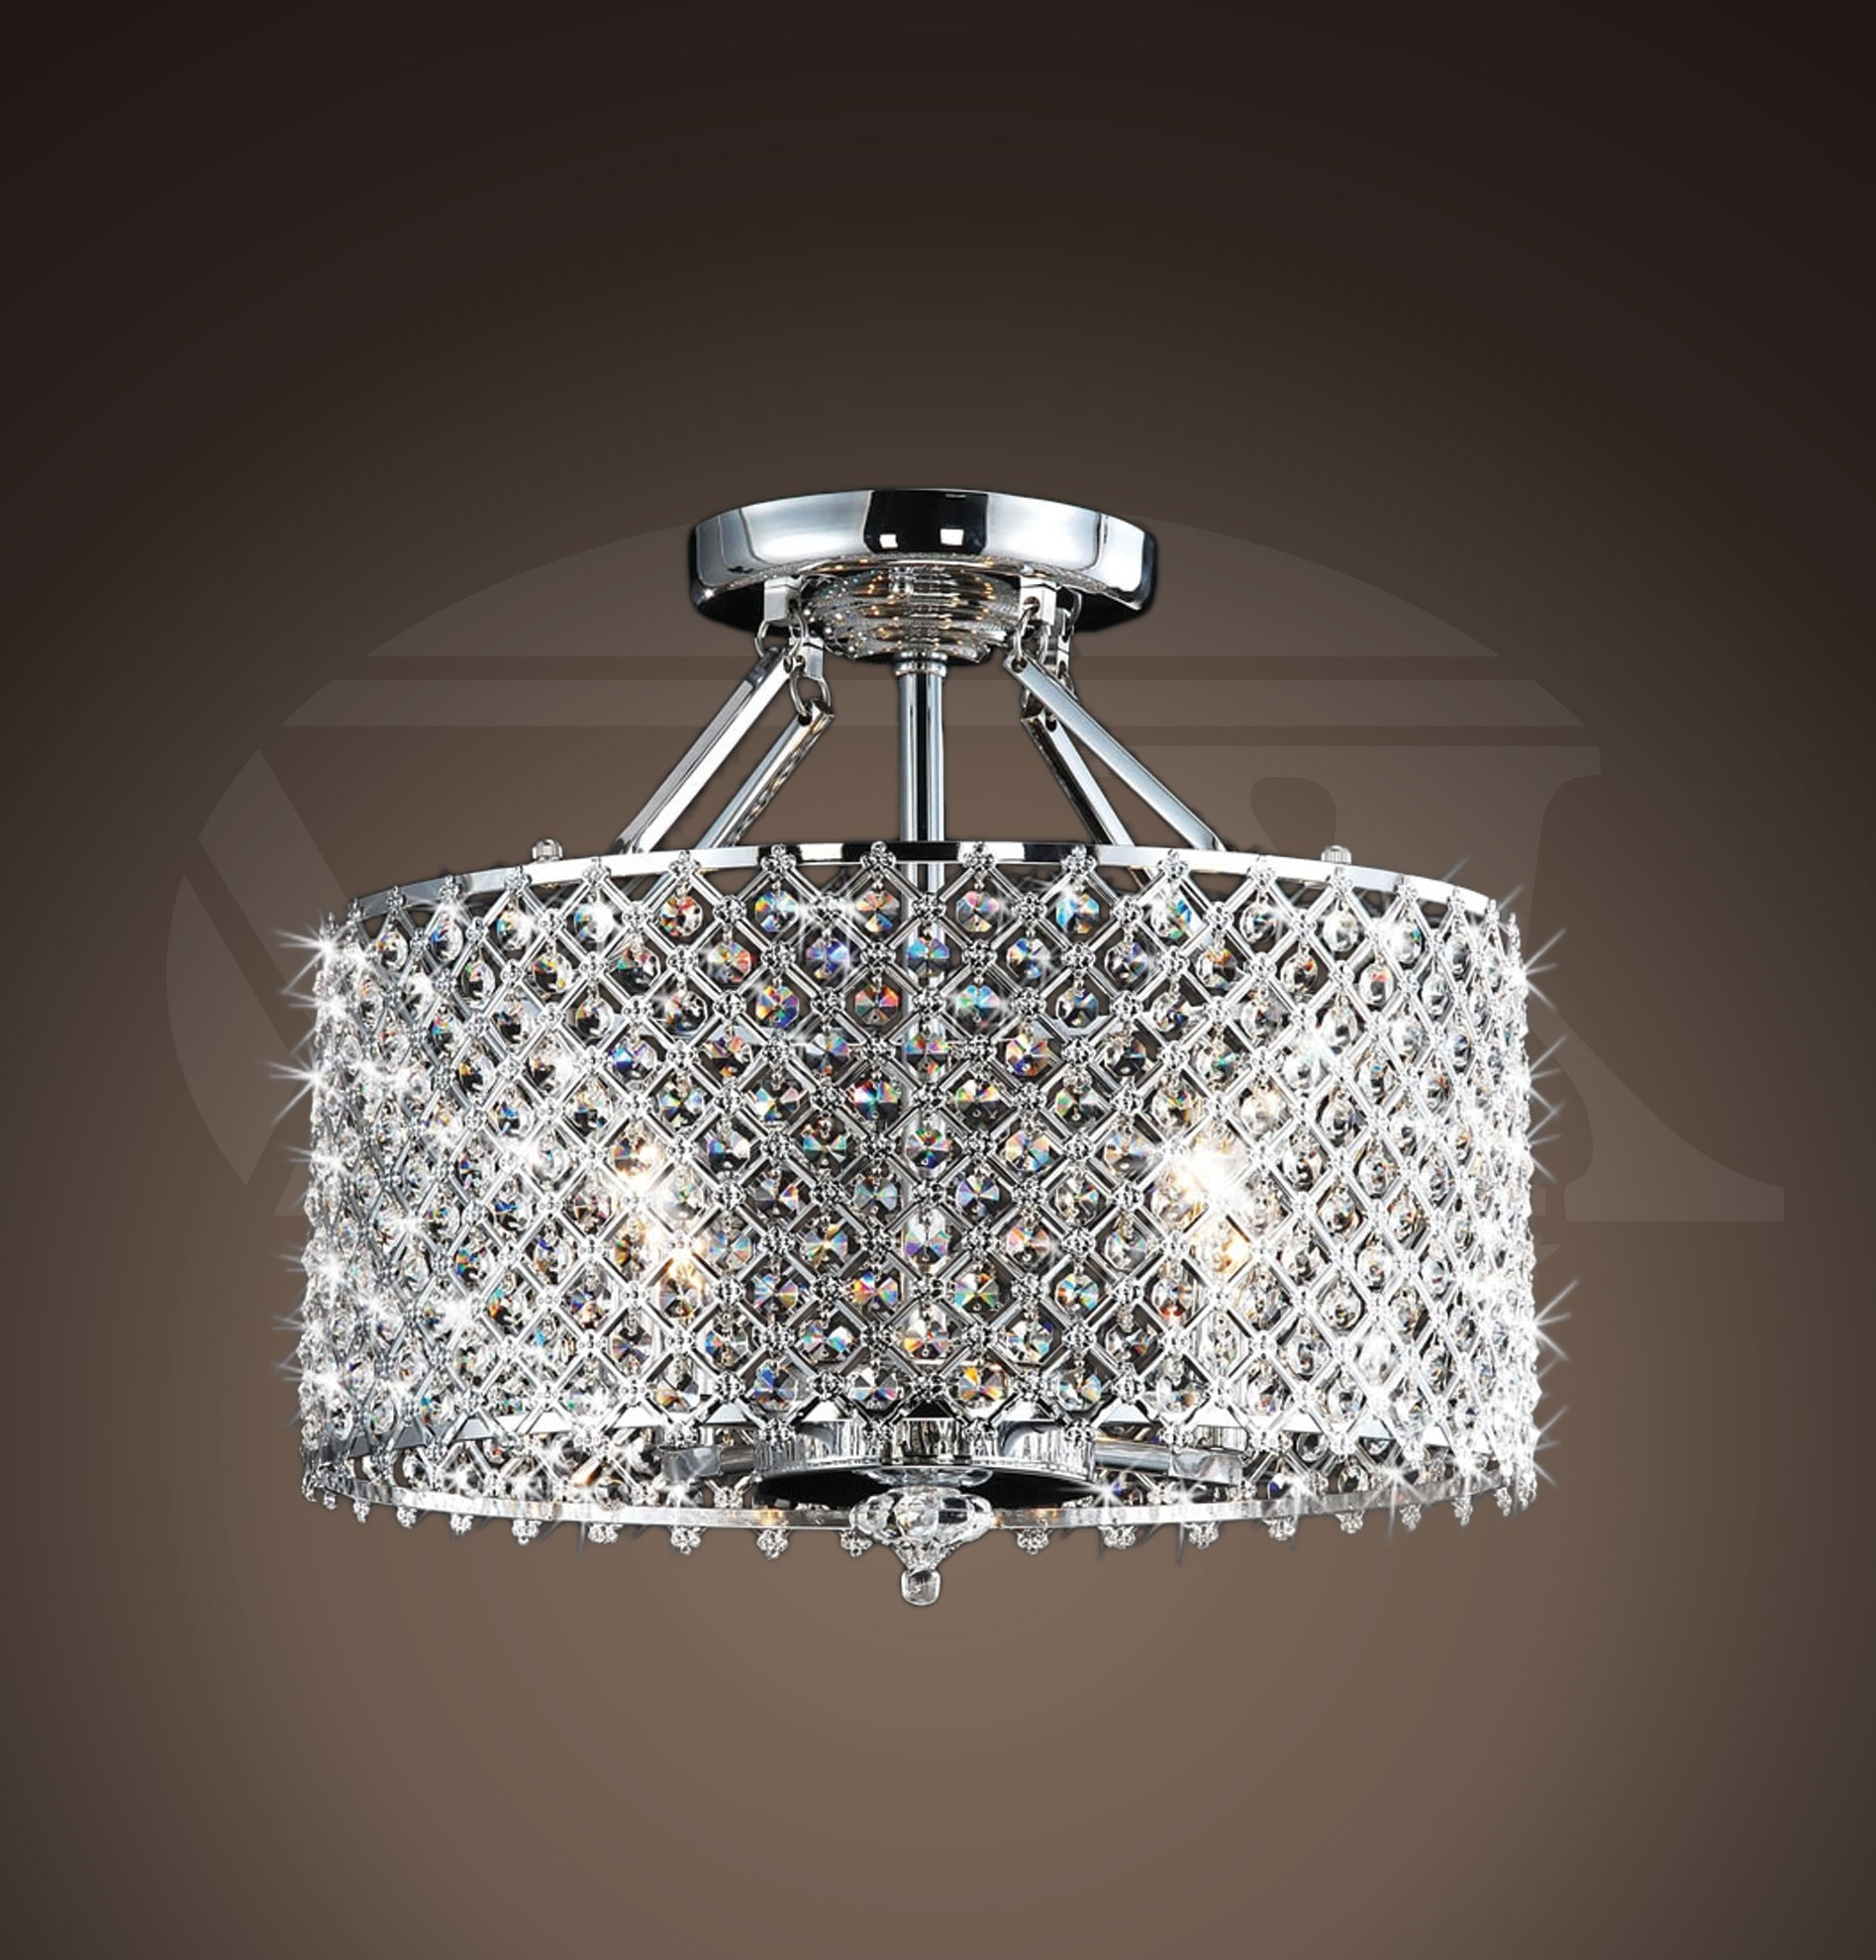 Wall Mount Crystal Chandeliers Throughout Best And Newest Helina Chrome And Crystal 4 Light Round Ceiling Flush Mount (View 2 of 20)